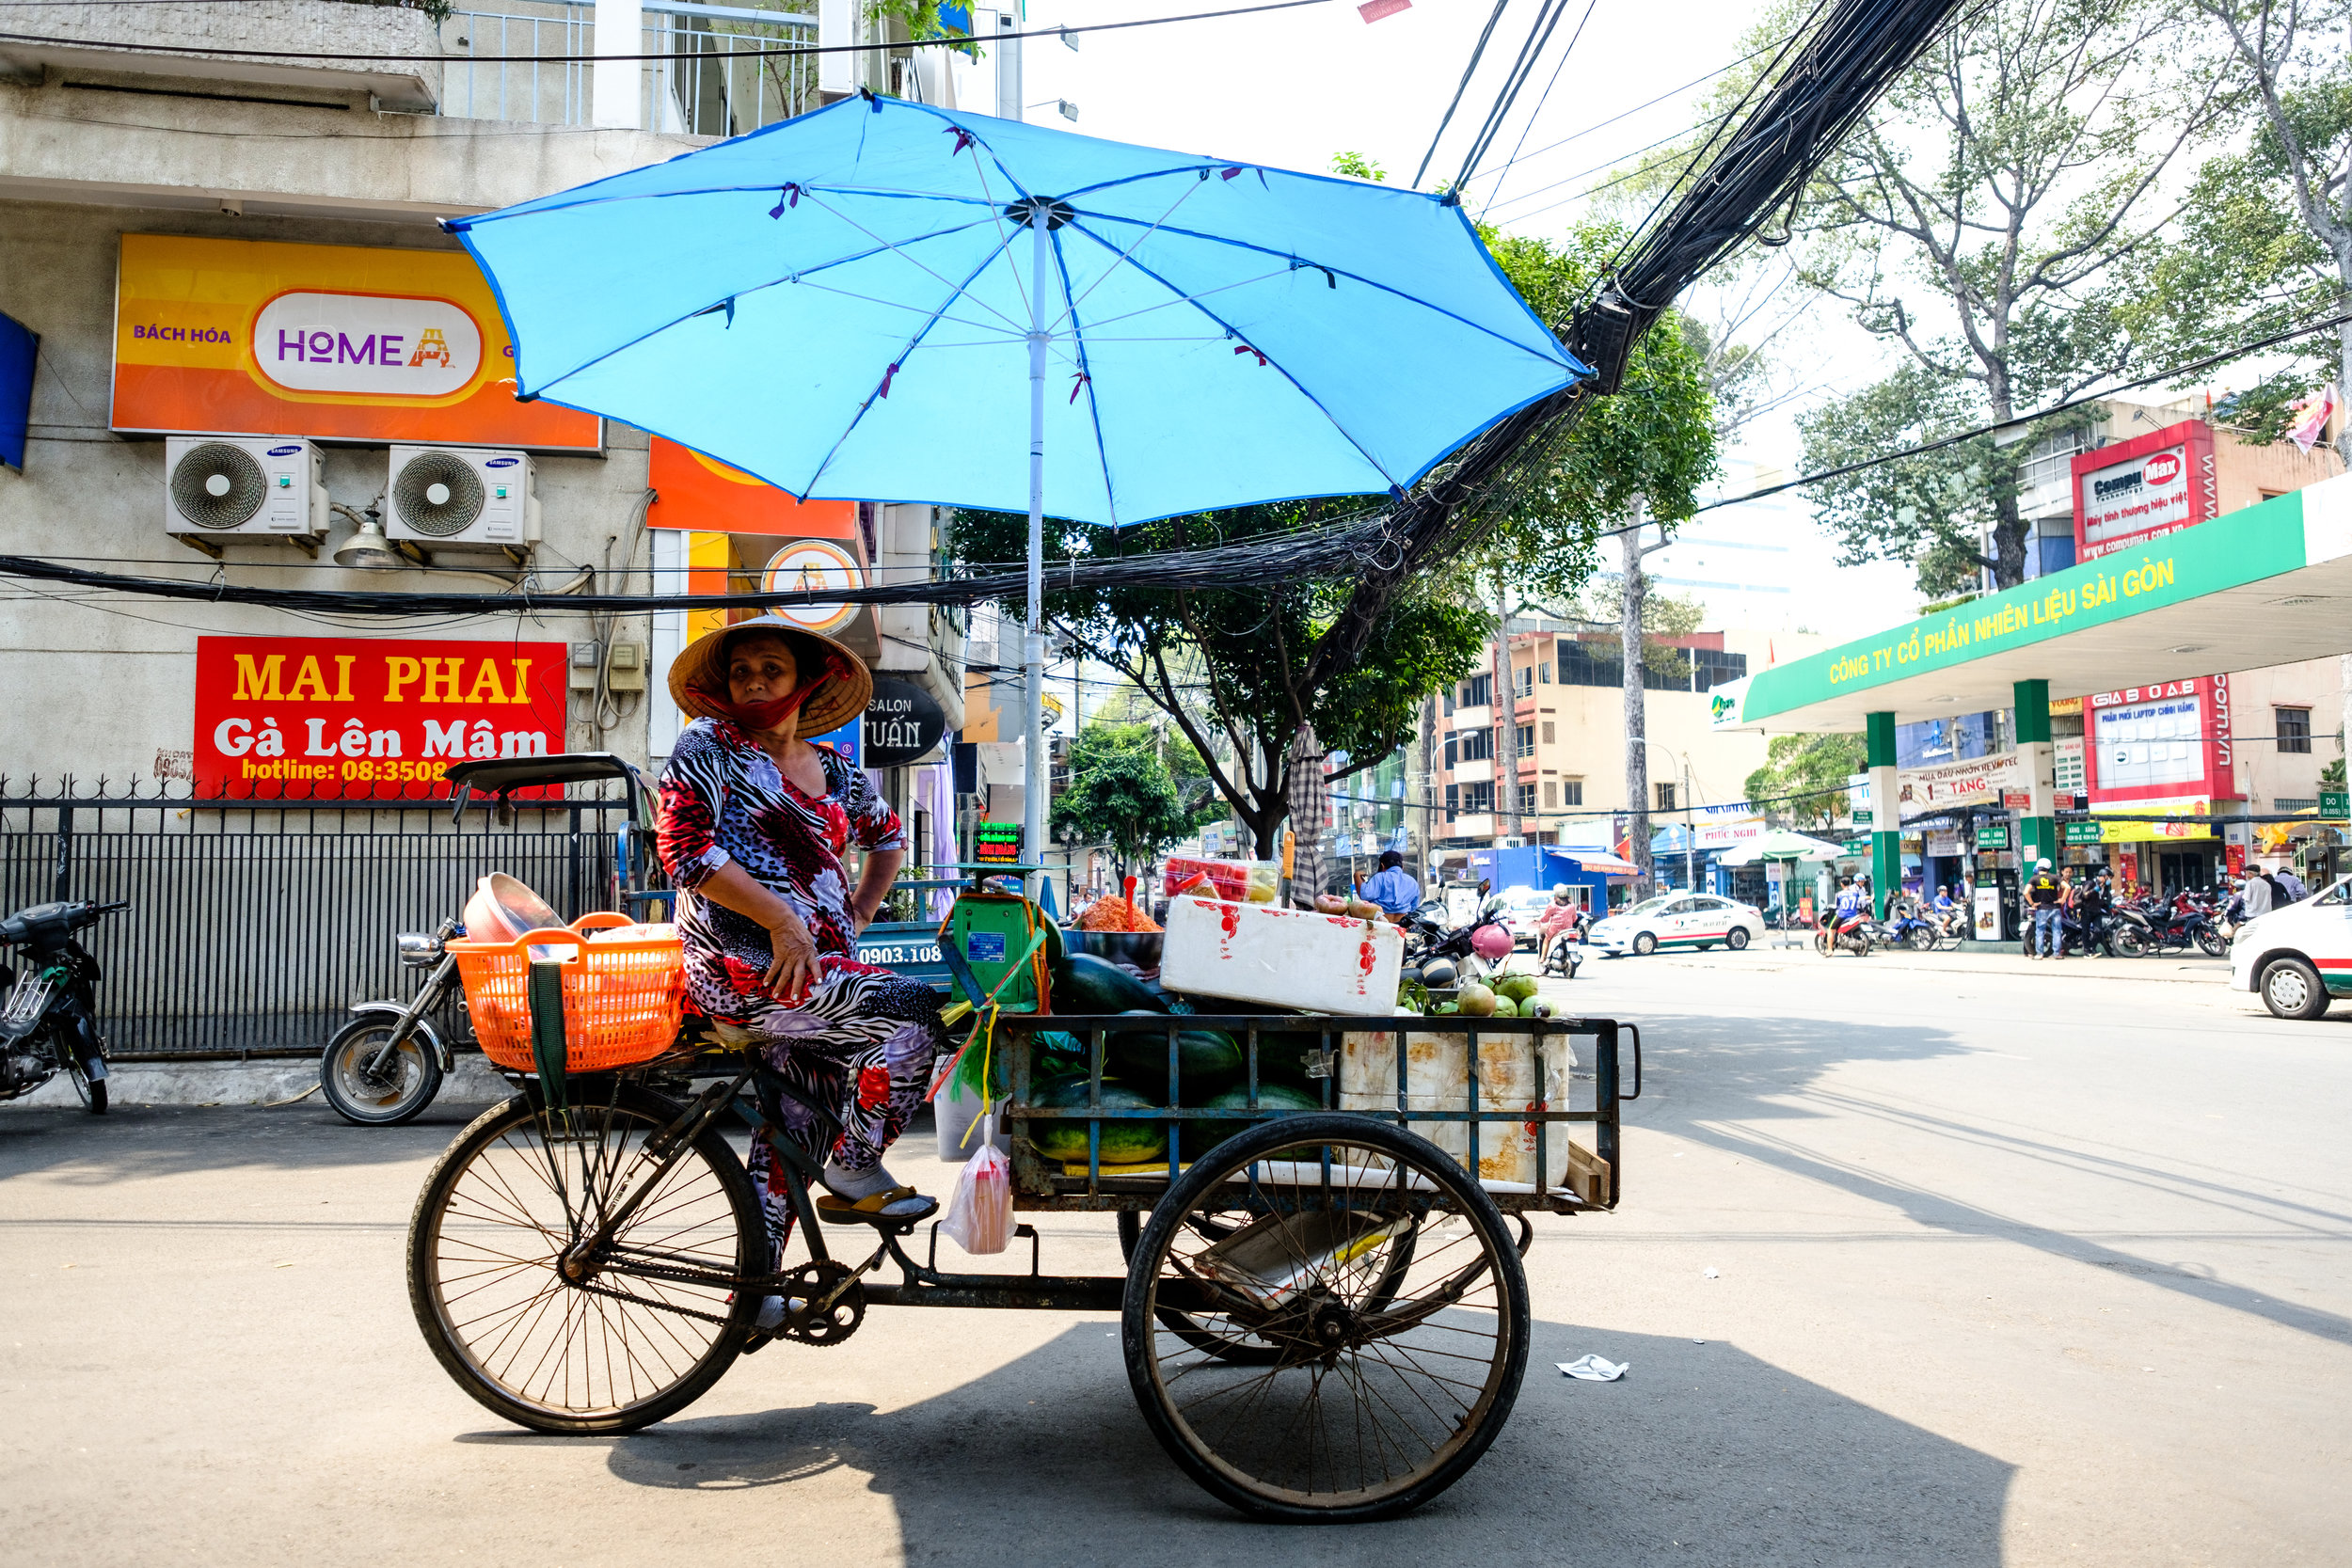 A street vendor sells vegetables from her tricycle store in Ho Chi Minh City, Vietnam